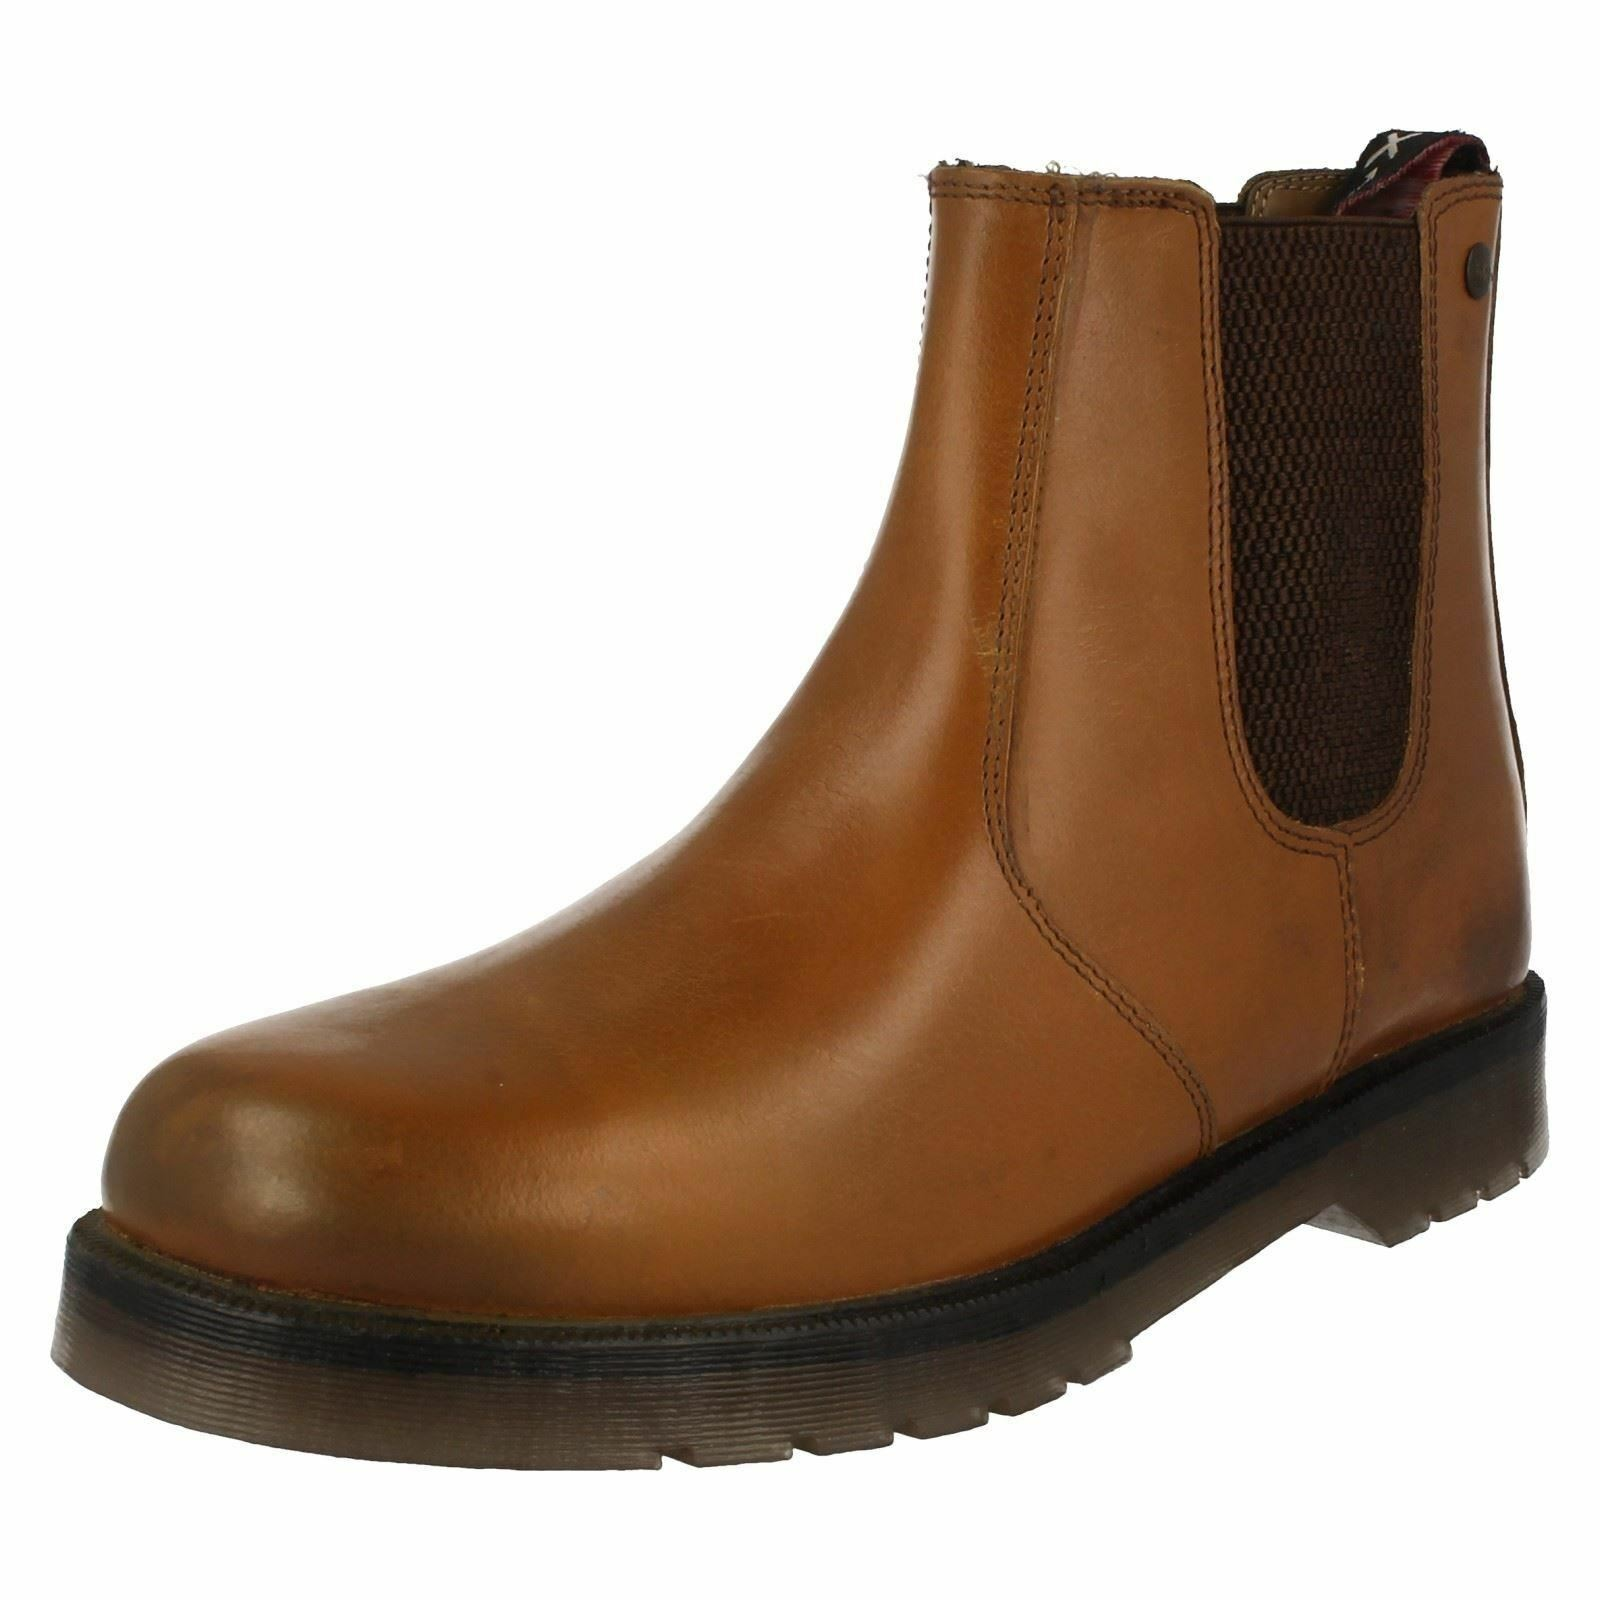 Catesby 01700 Men's Tan Leather Uppers, Chelsea Boots